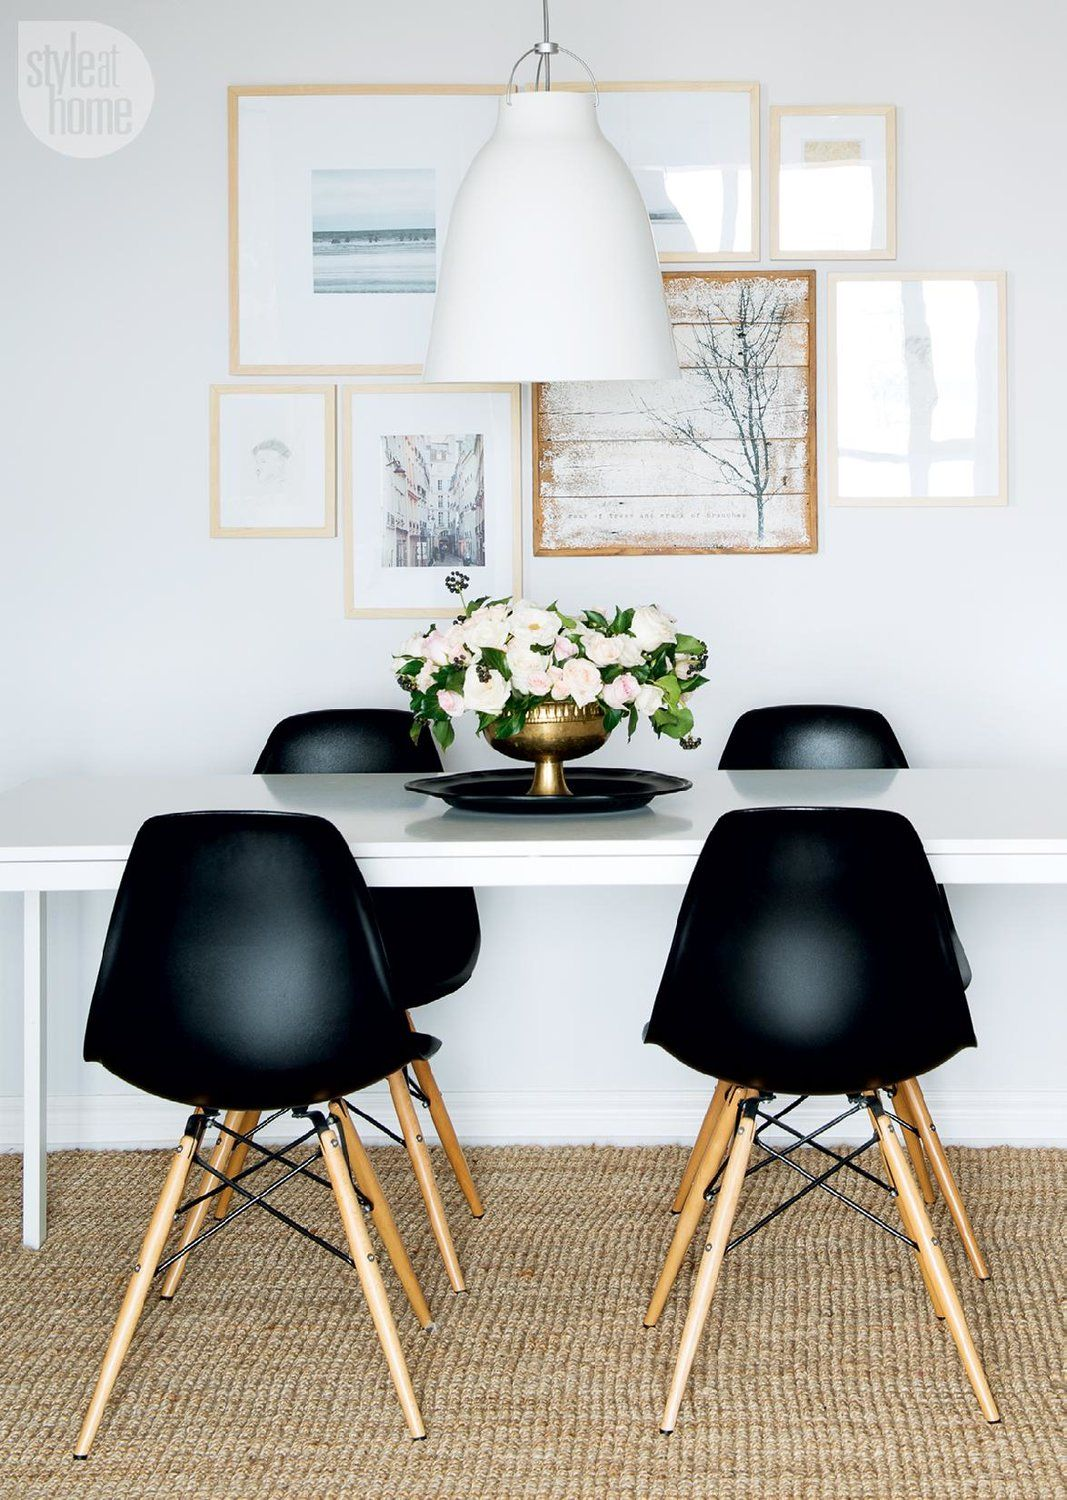 Condo Tour: Modern Boho Chic | Style At Home